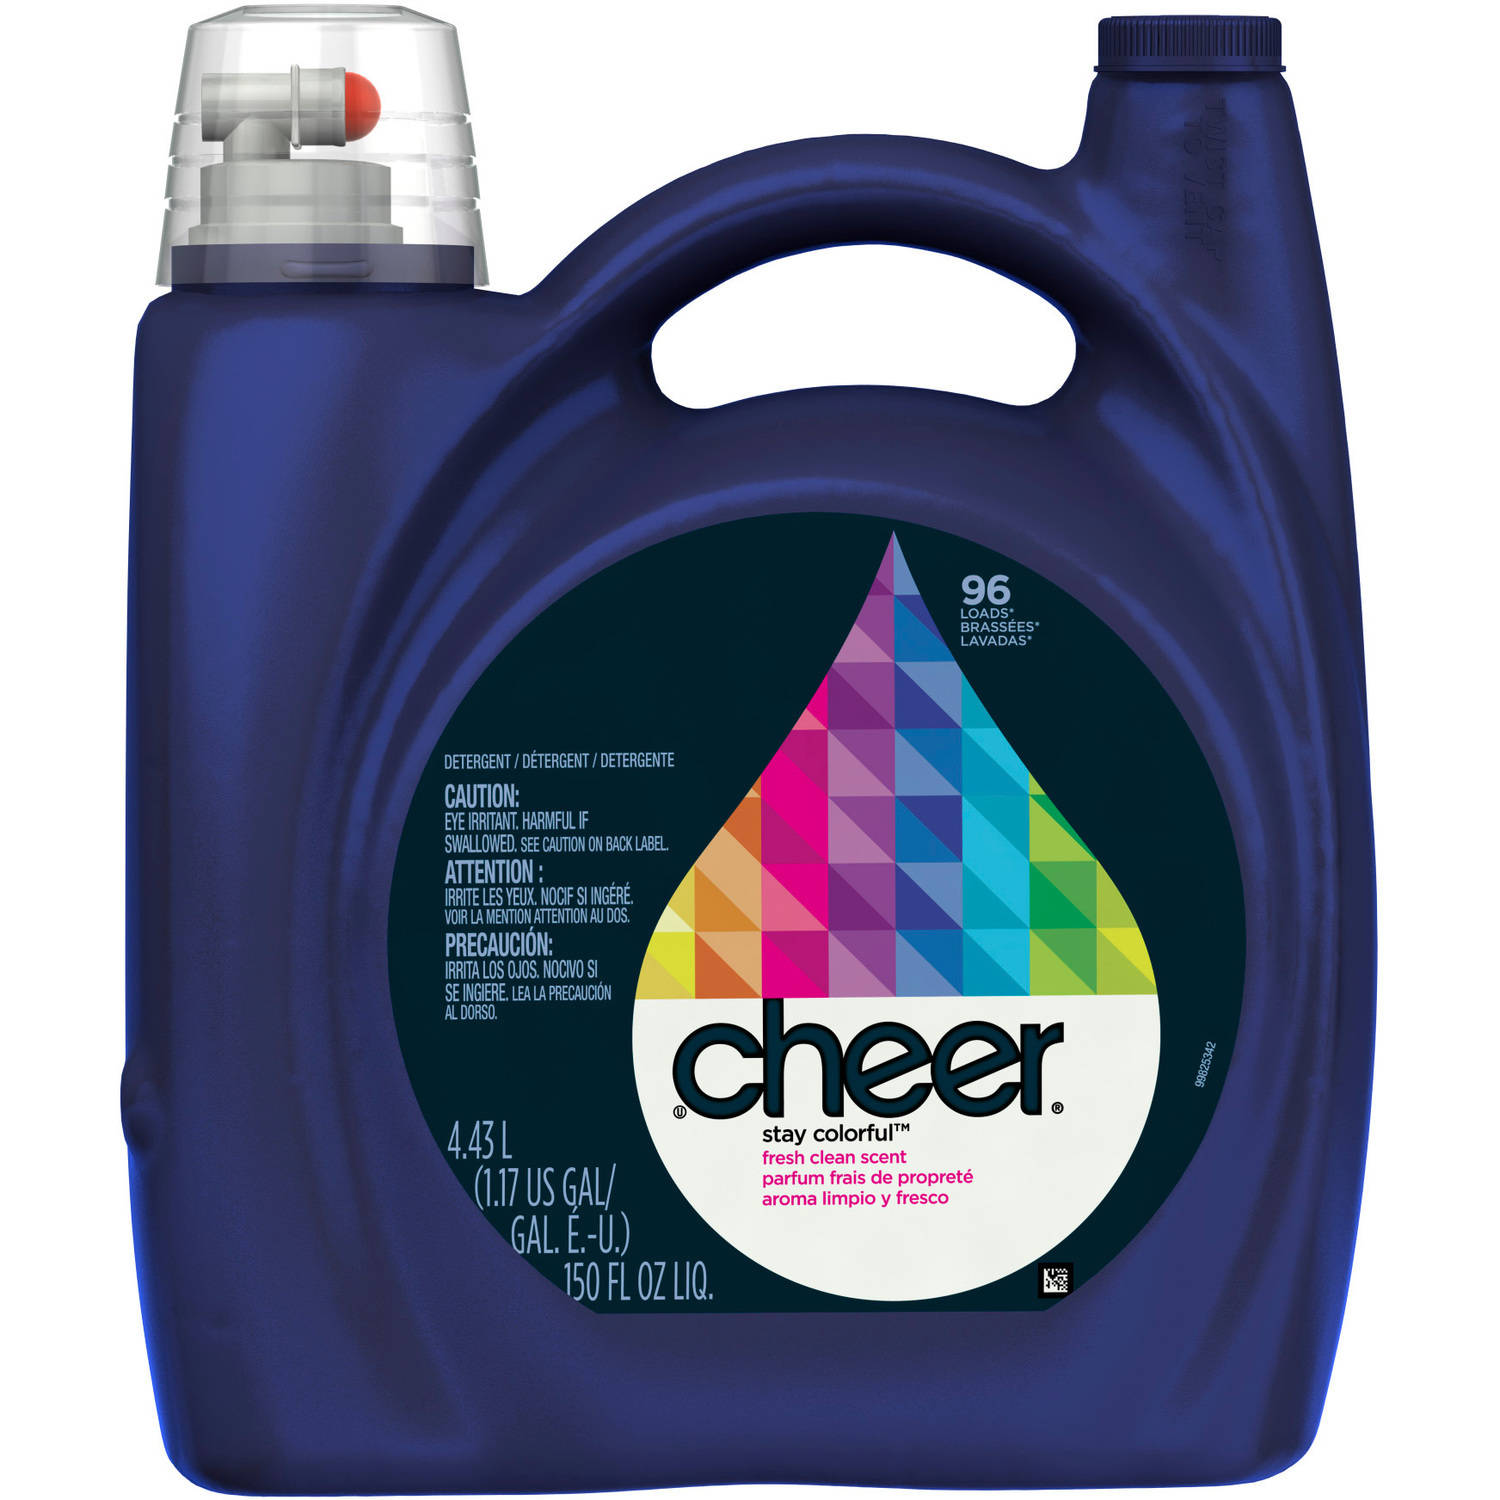 Cheer Stay Colorful Fresh Clean Scent Liquid Laundry Detergent, 96 Loads 150 fl oz